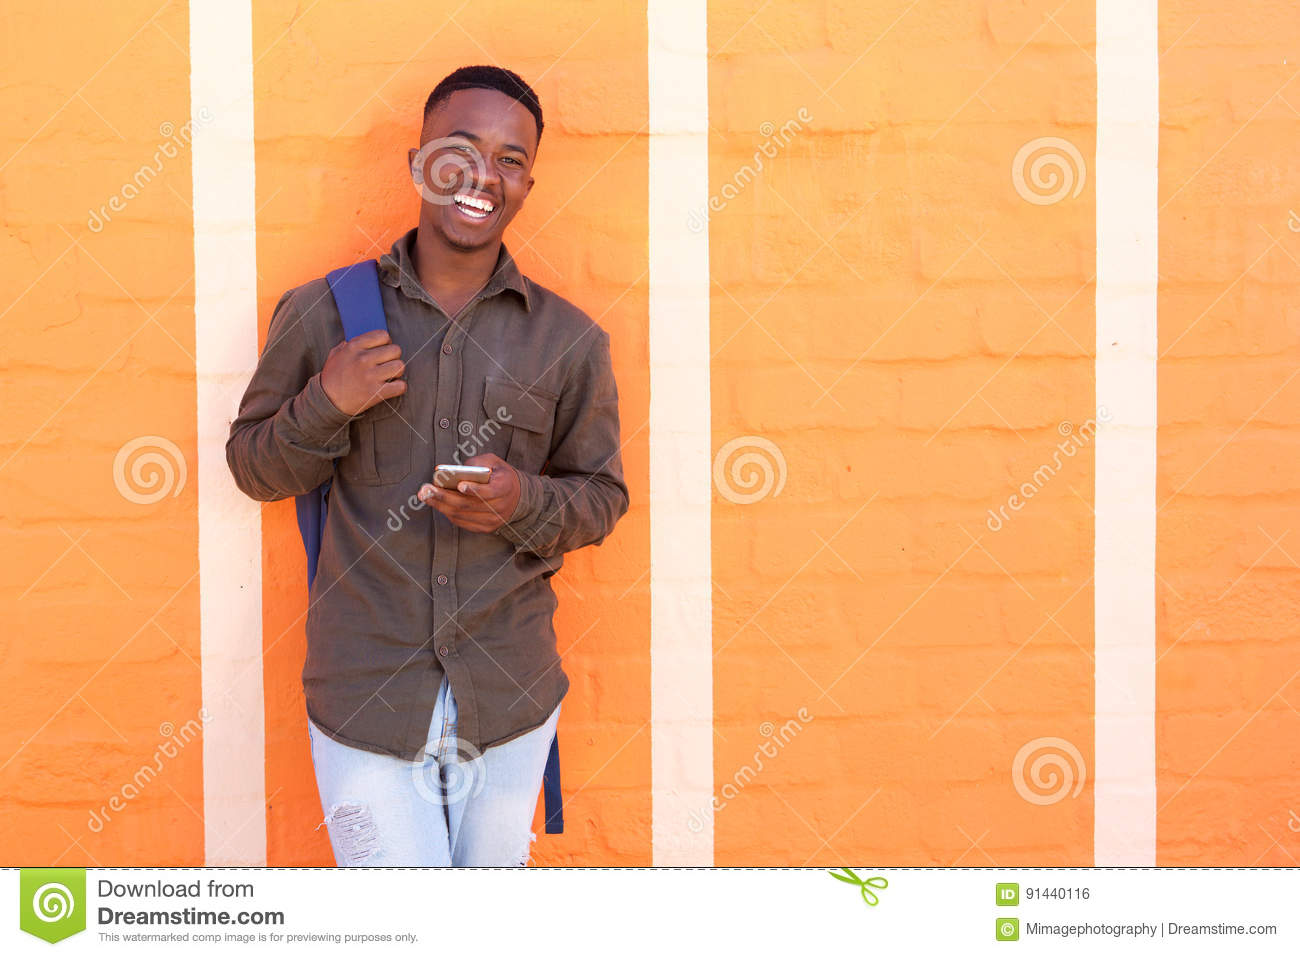 Happy black guy laughing with cell phone against orange wall